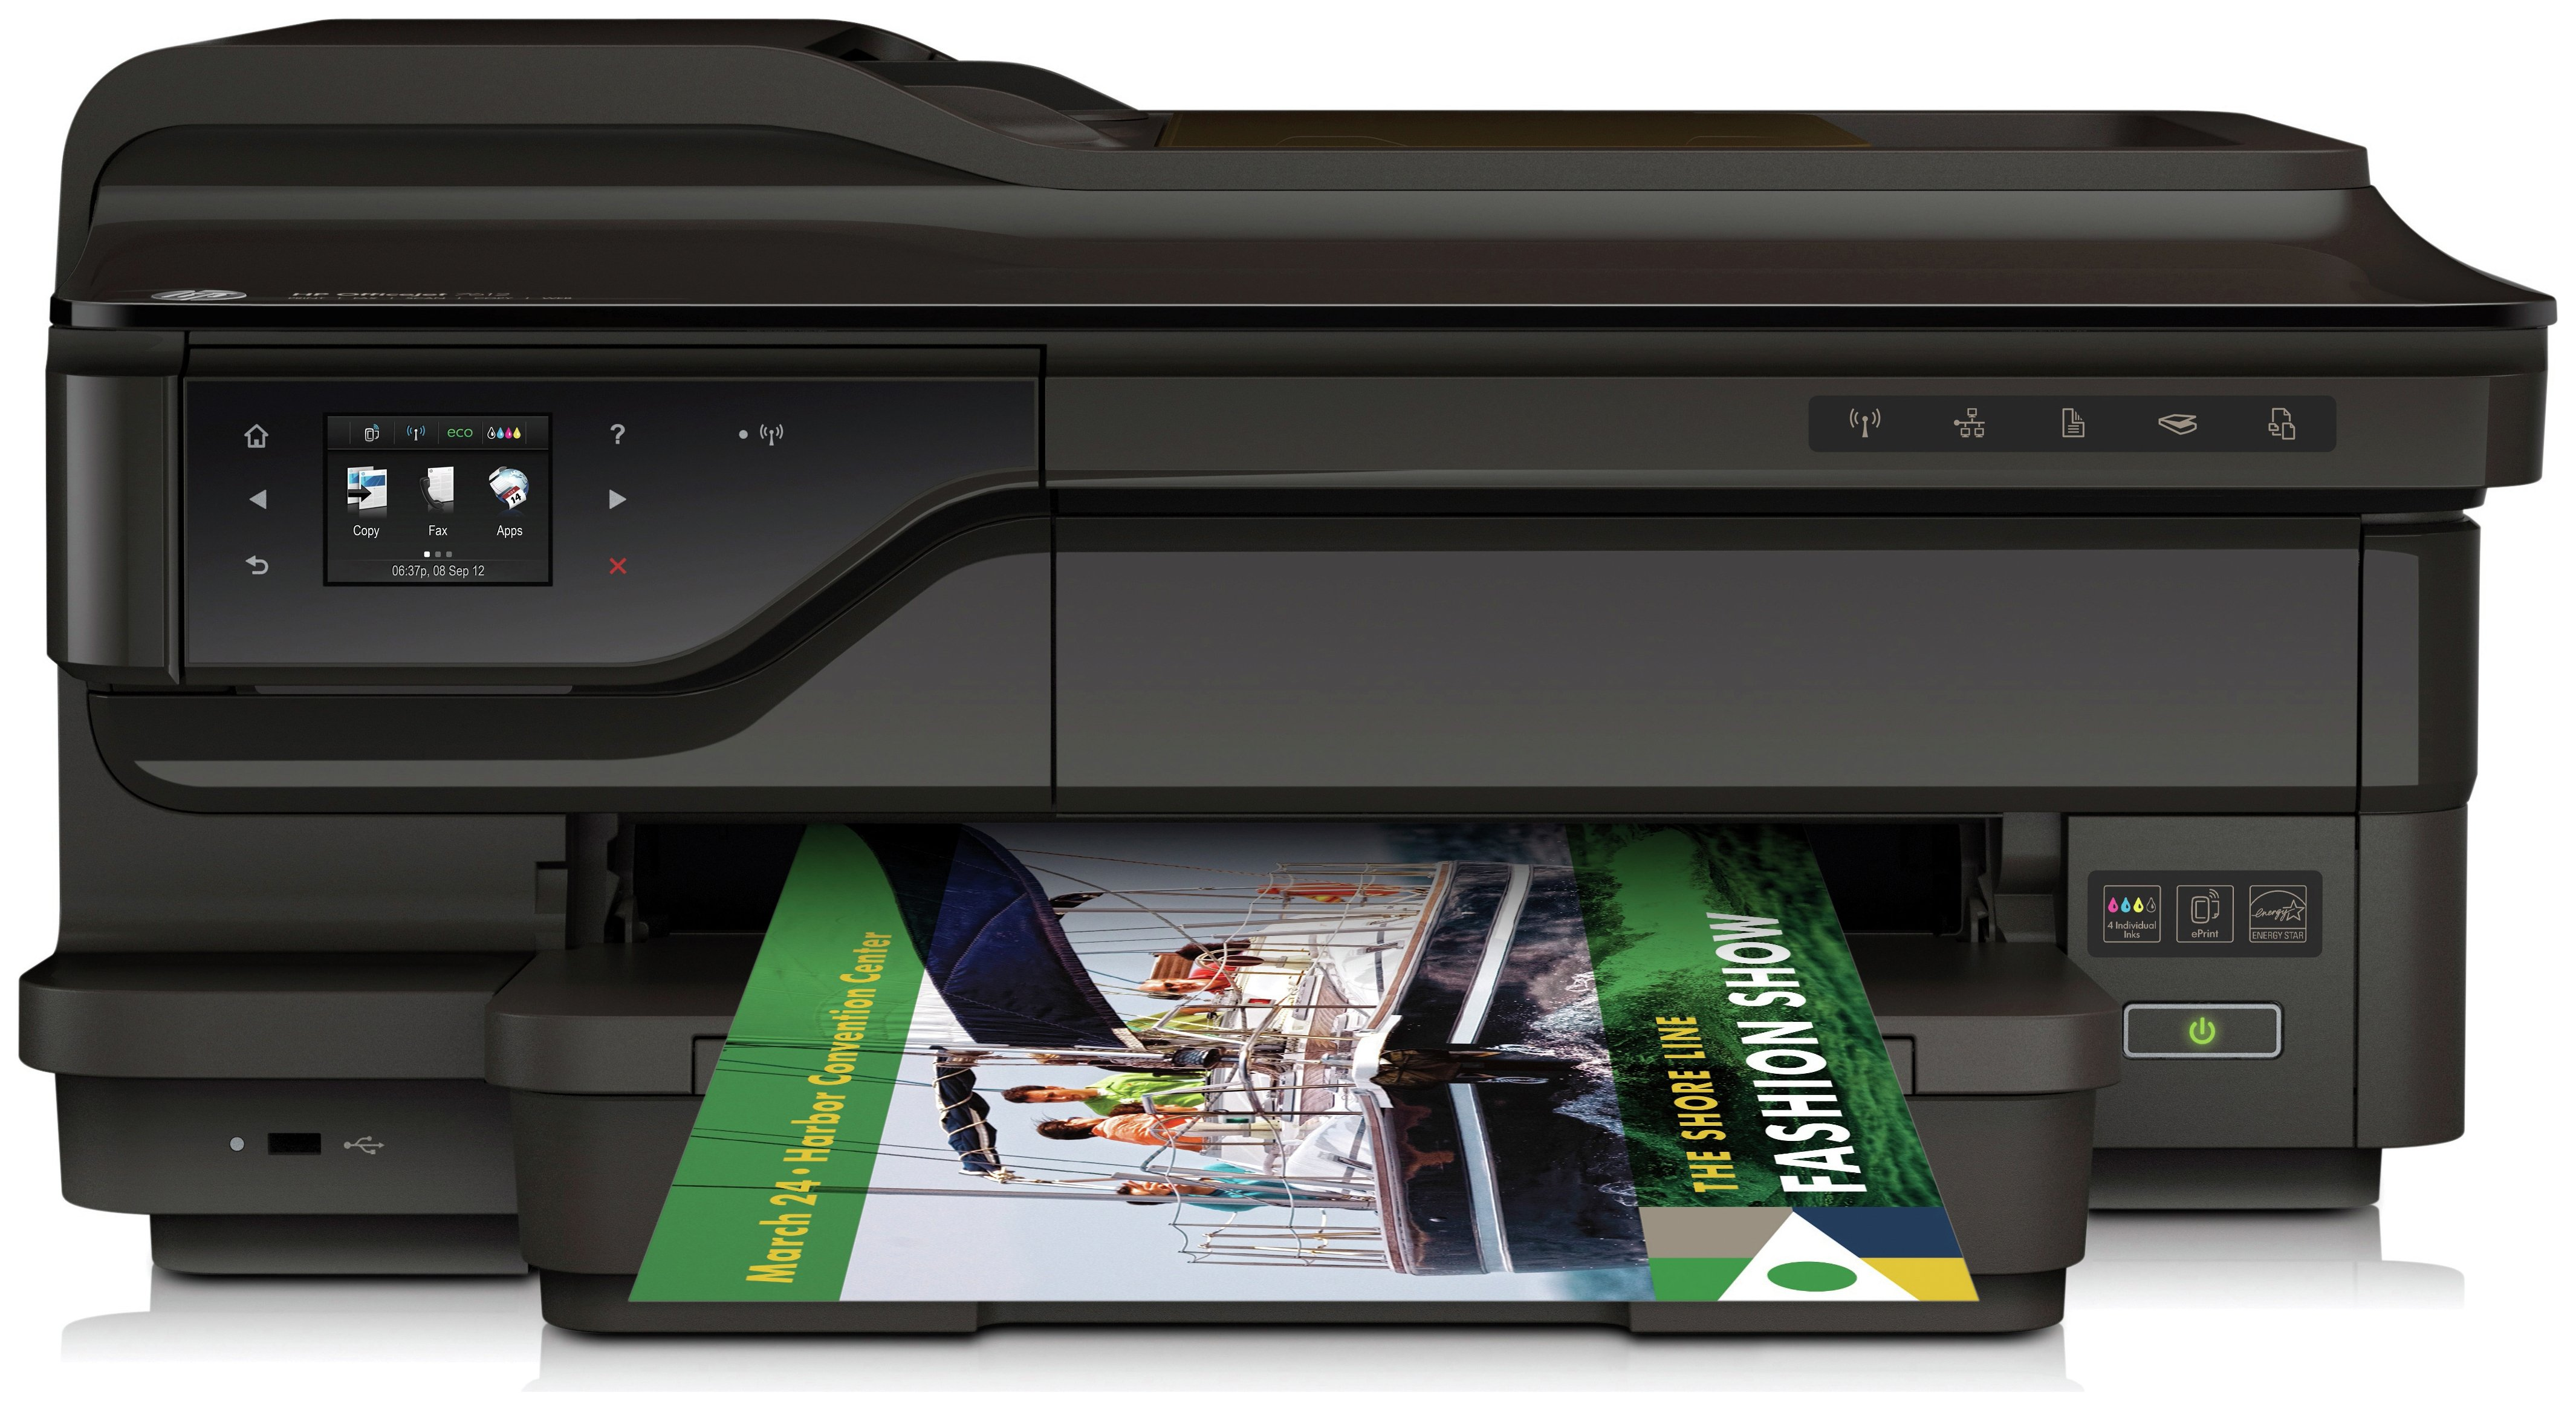 HP OfficeJet 7612 A3 All-in-One Printer.